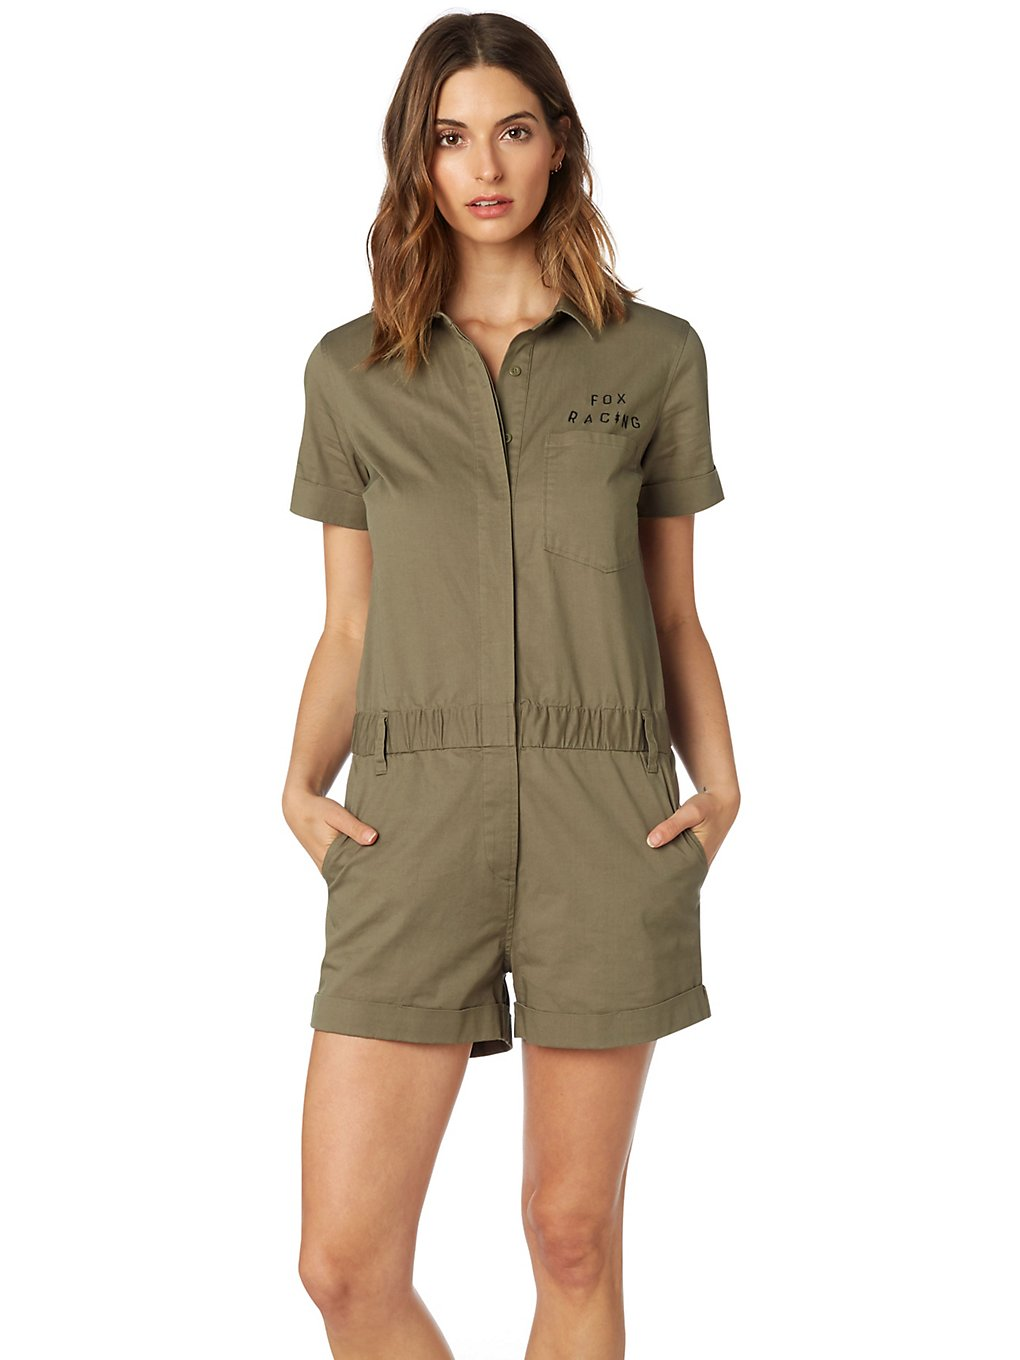 Hosen für Frauen - Fox Wrenching Jumpsuit fatigue green  - Onlineshop Blue Tomato